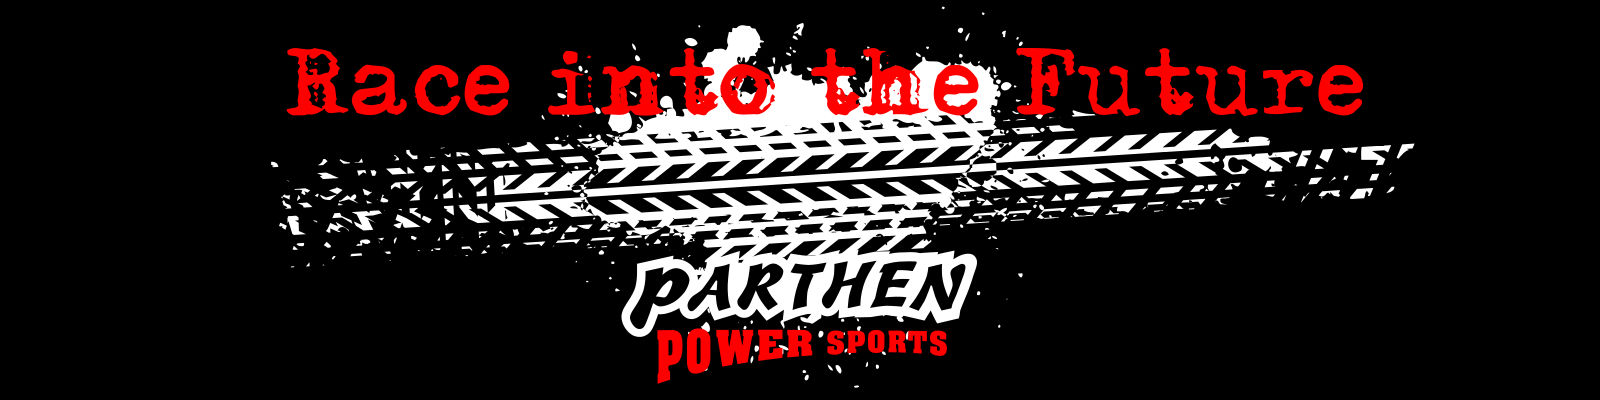 Reifenspuren Parthen Powersports